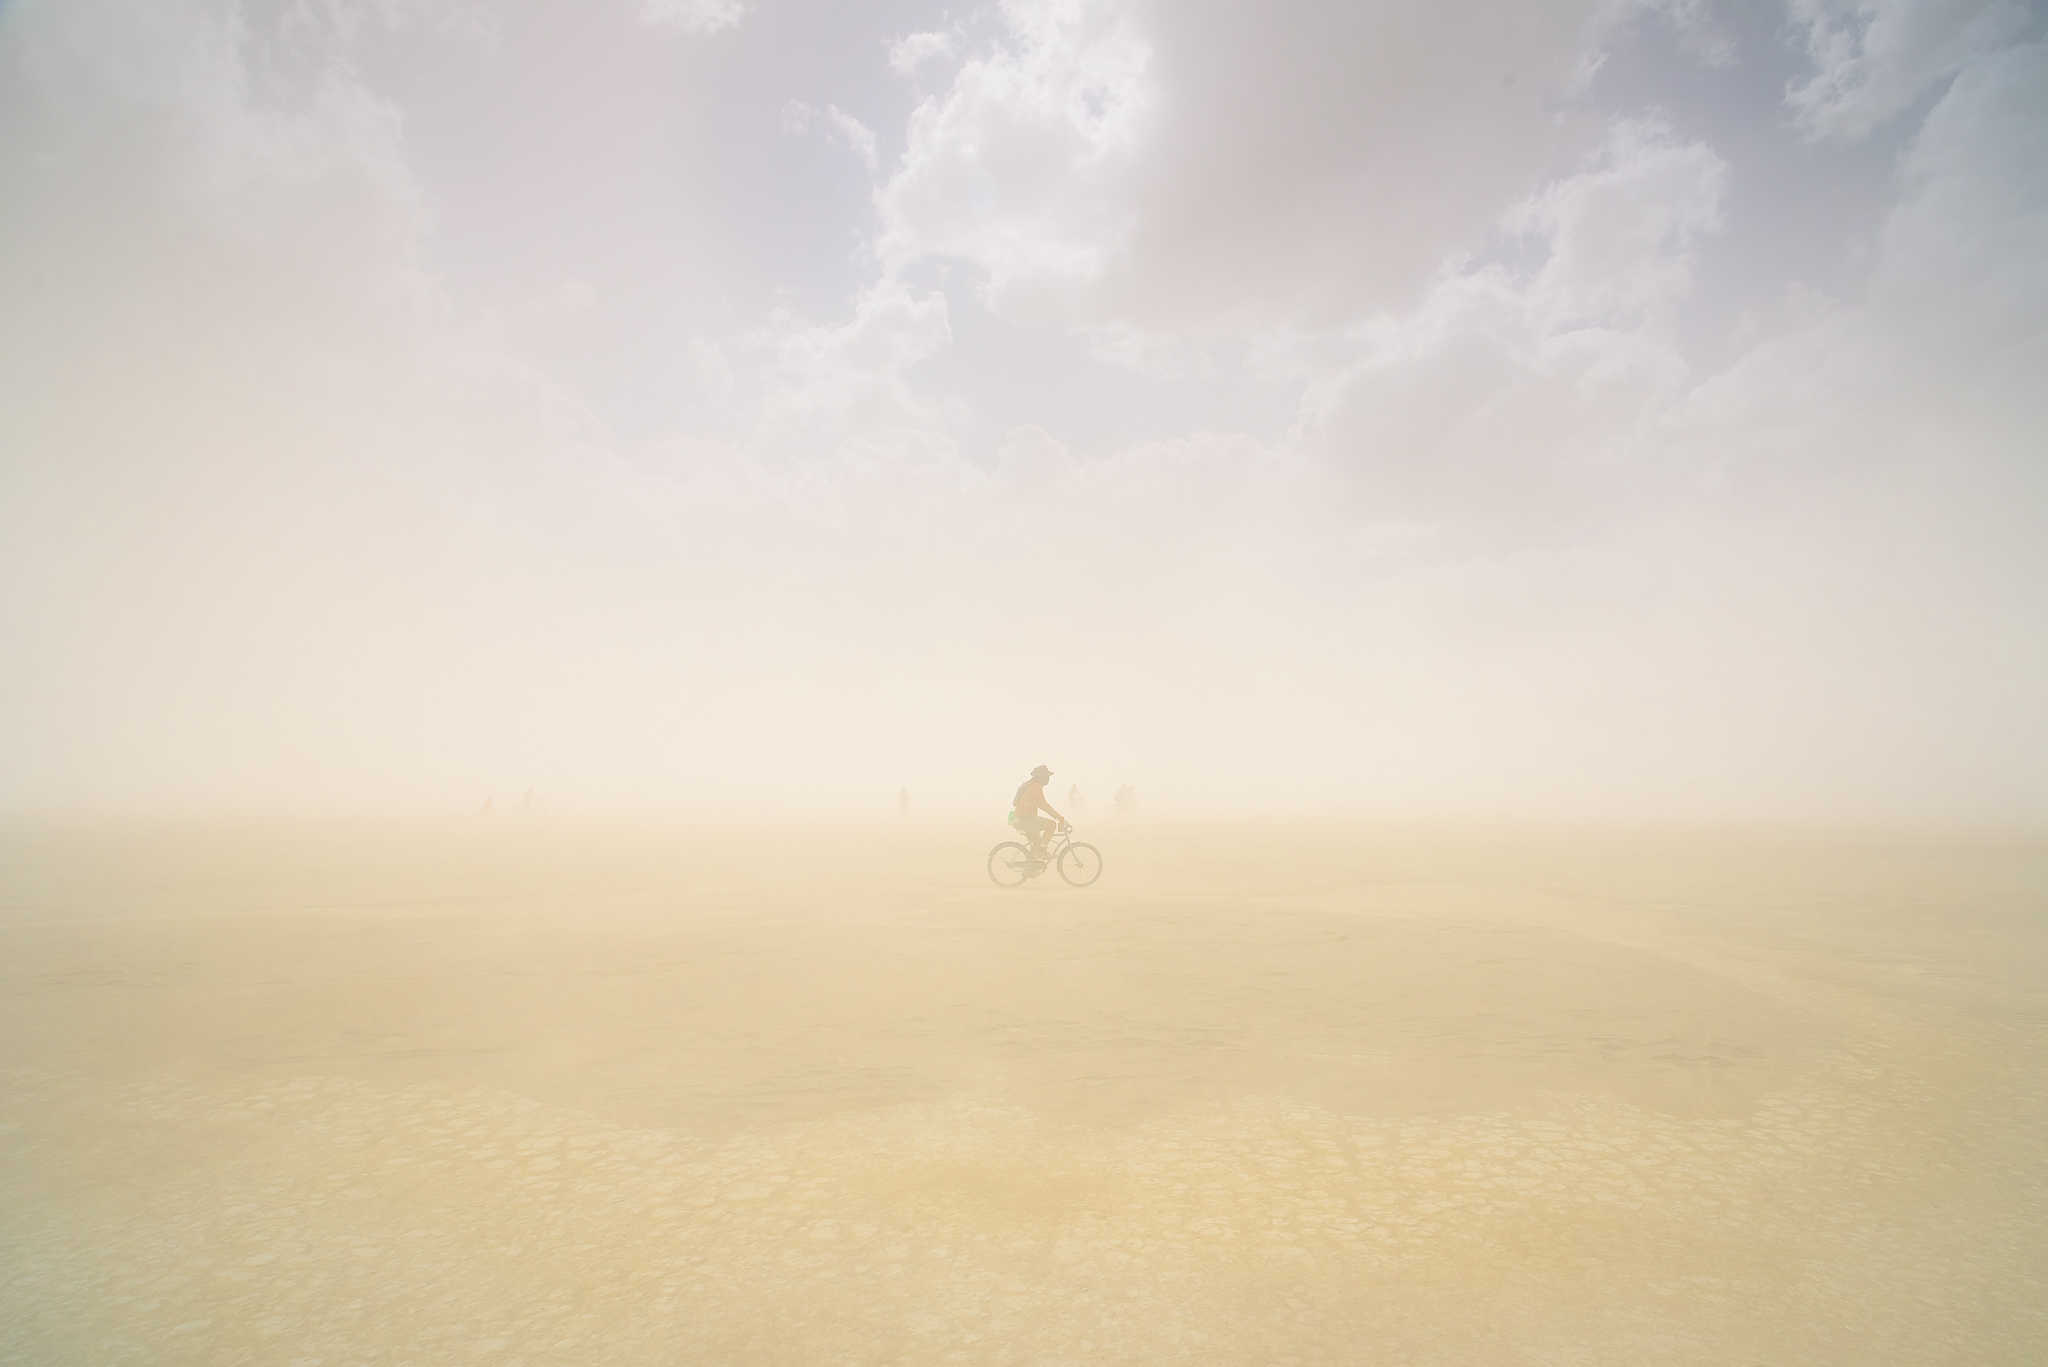 On this afternoon bike cruise we were hammered with arguably the heaviest dust storm we've ever experienced. I snapped this moments before visibility shrank to 10 feet for the next hour.